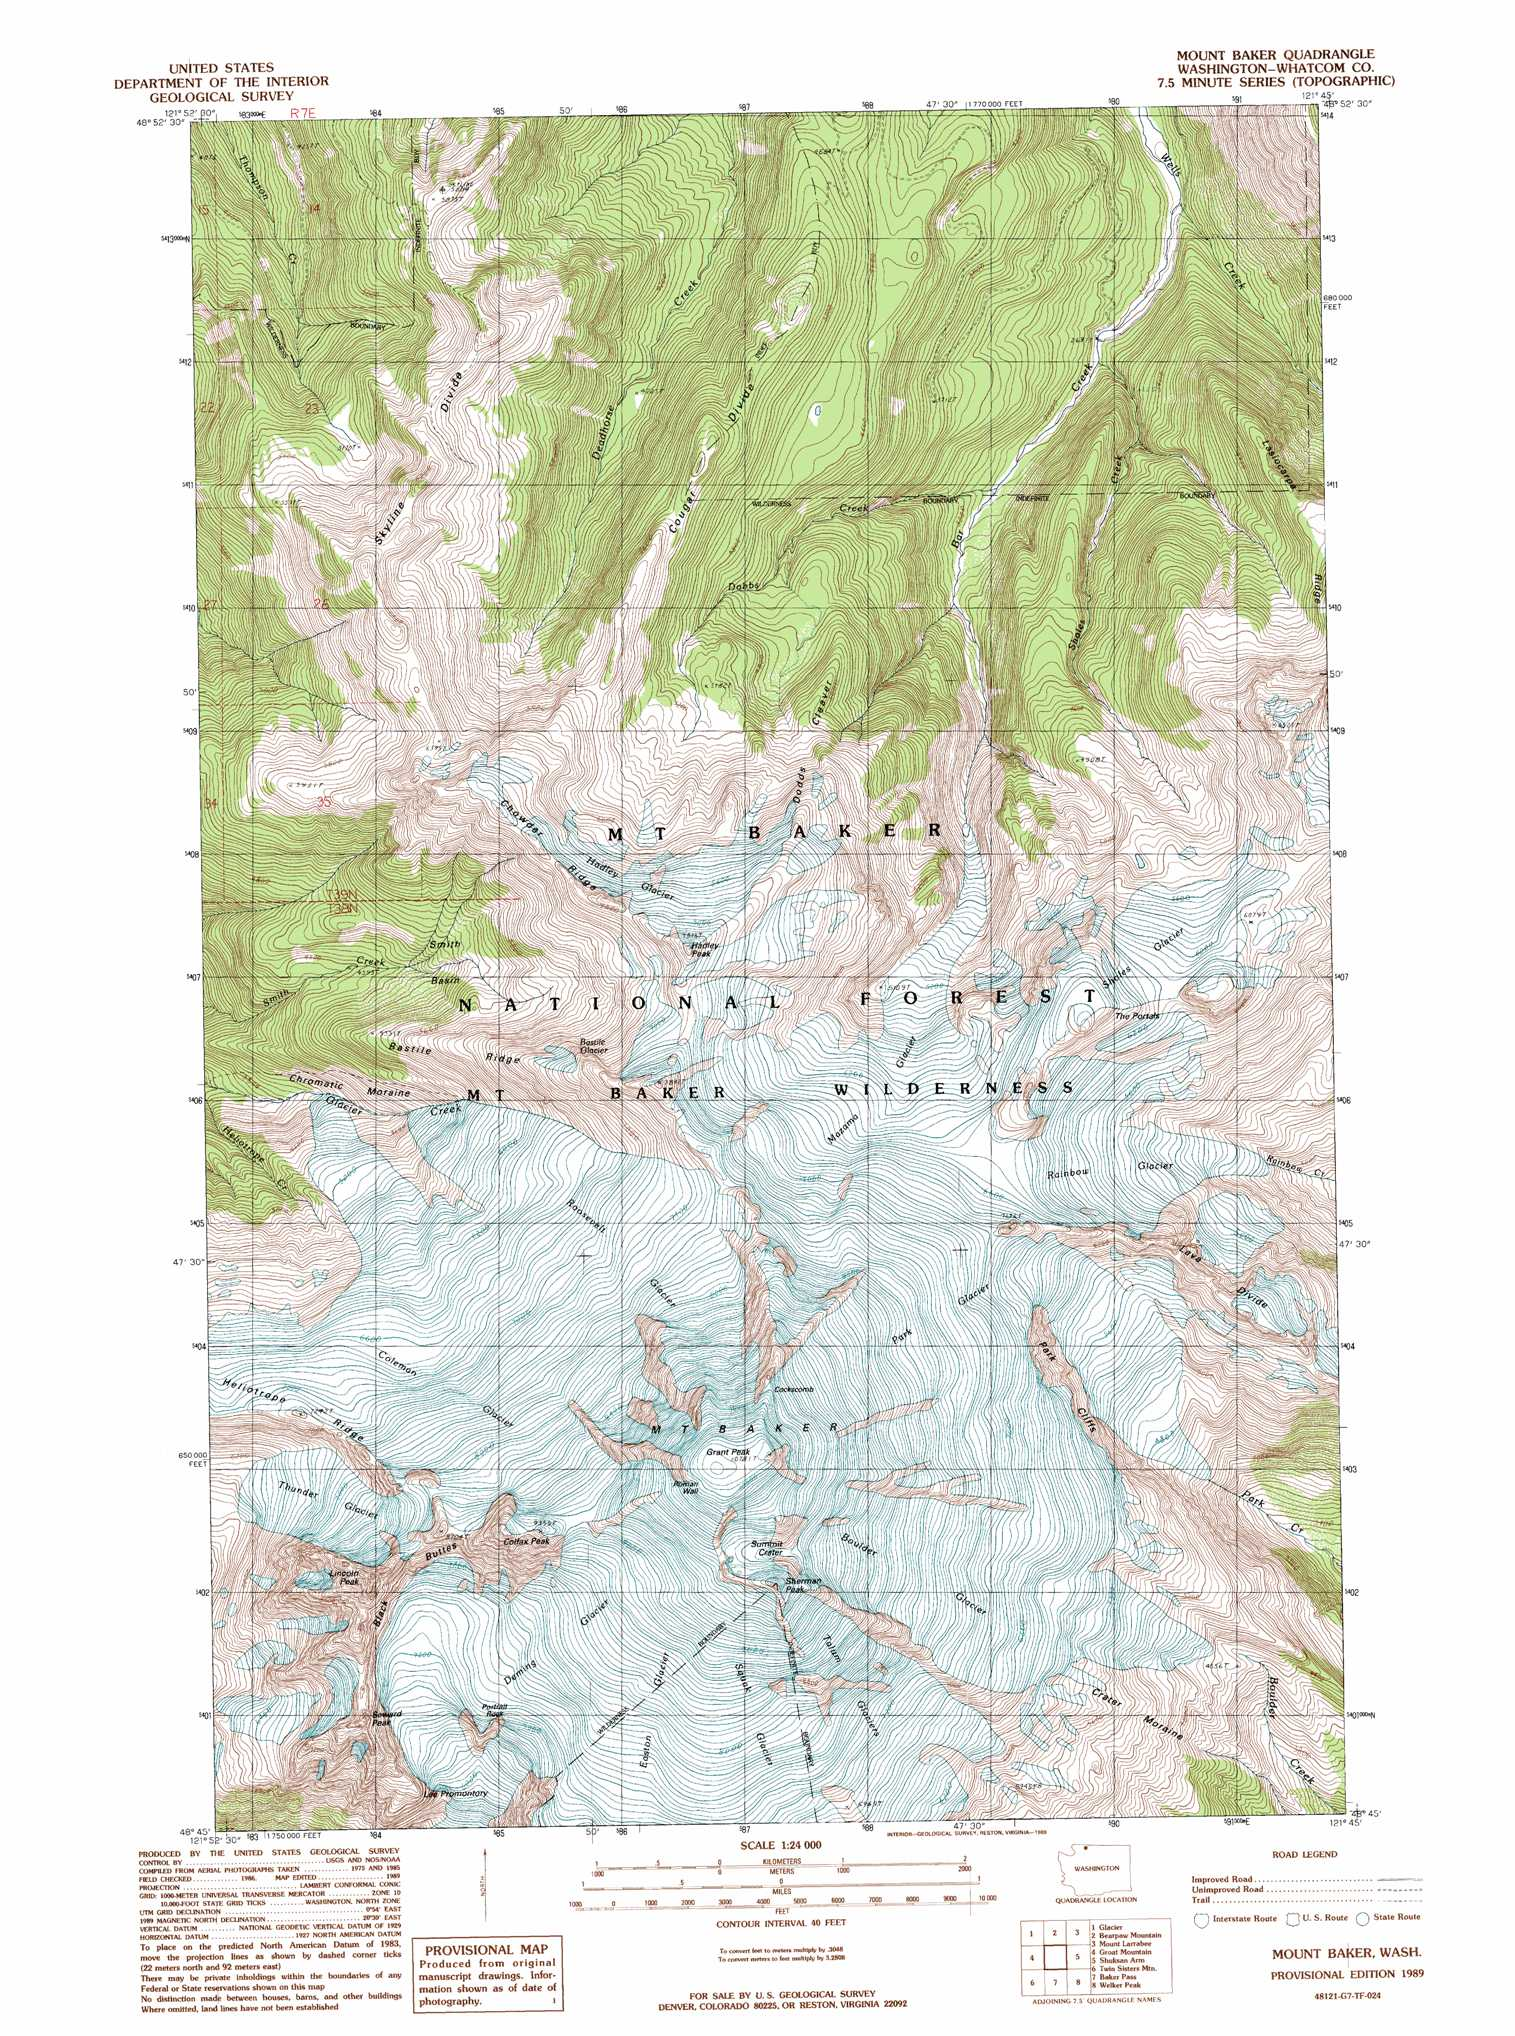 Mount Baker Topographic Map WA  USGS Topo Quad 48121g7